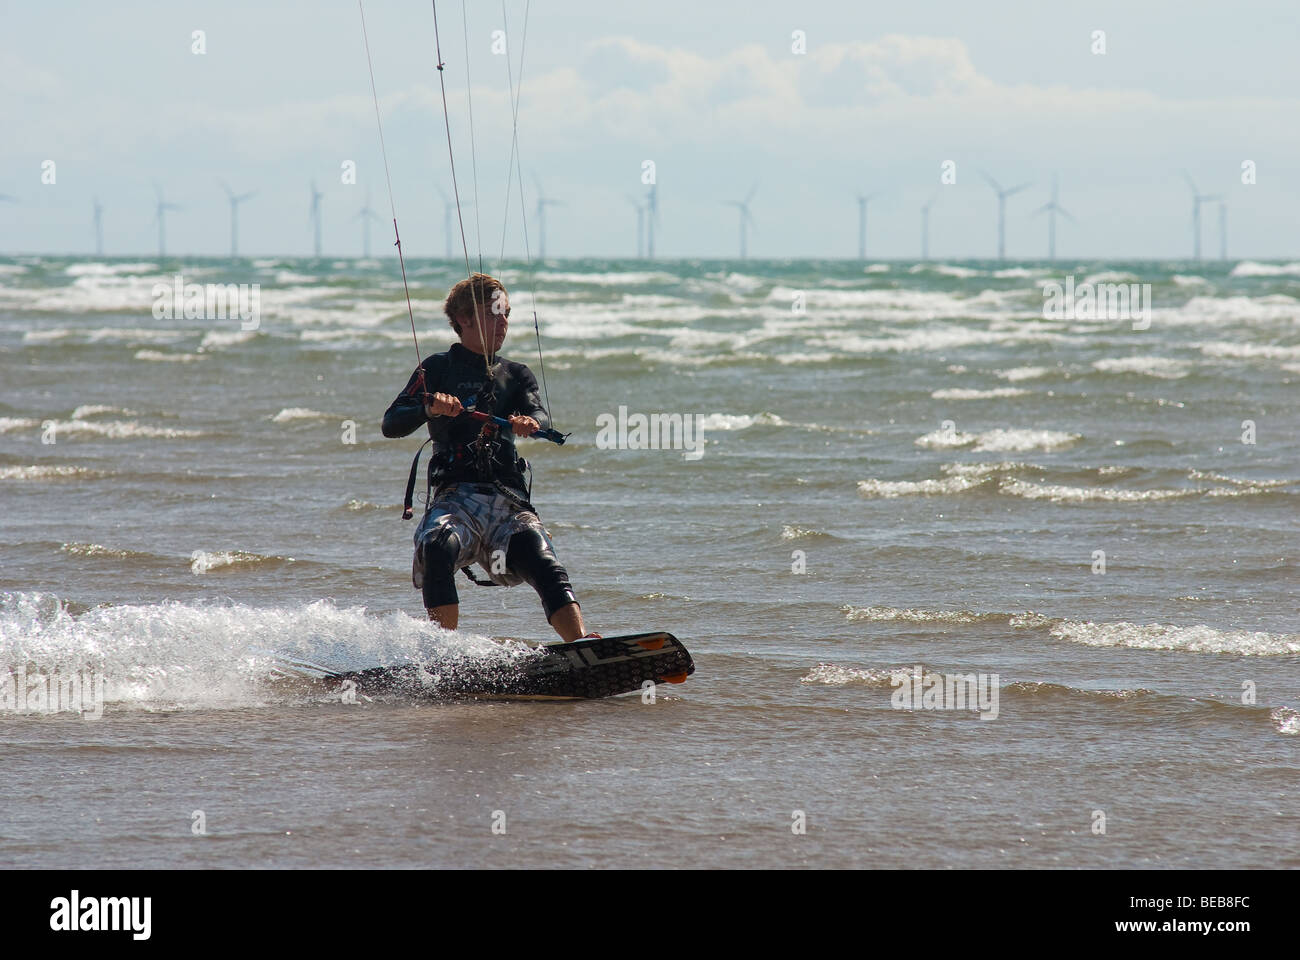 Youth kite surfing - Stock Image